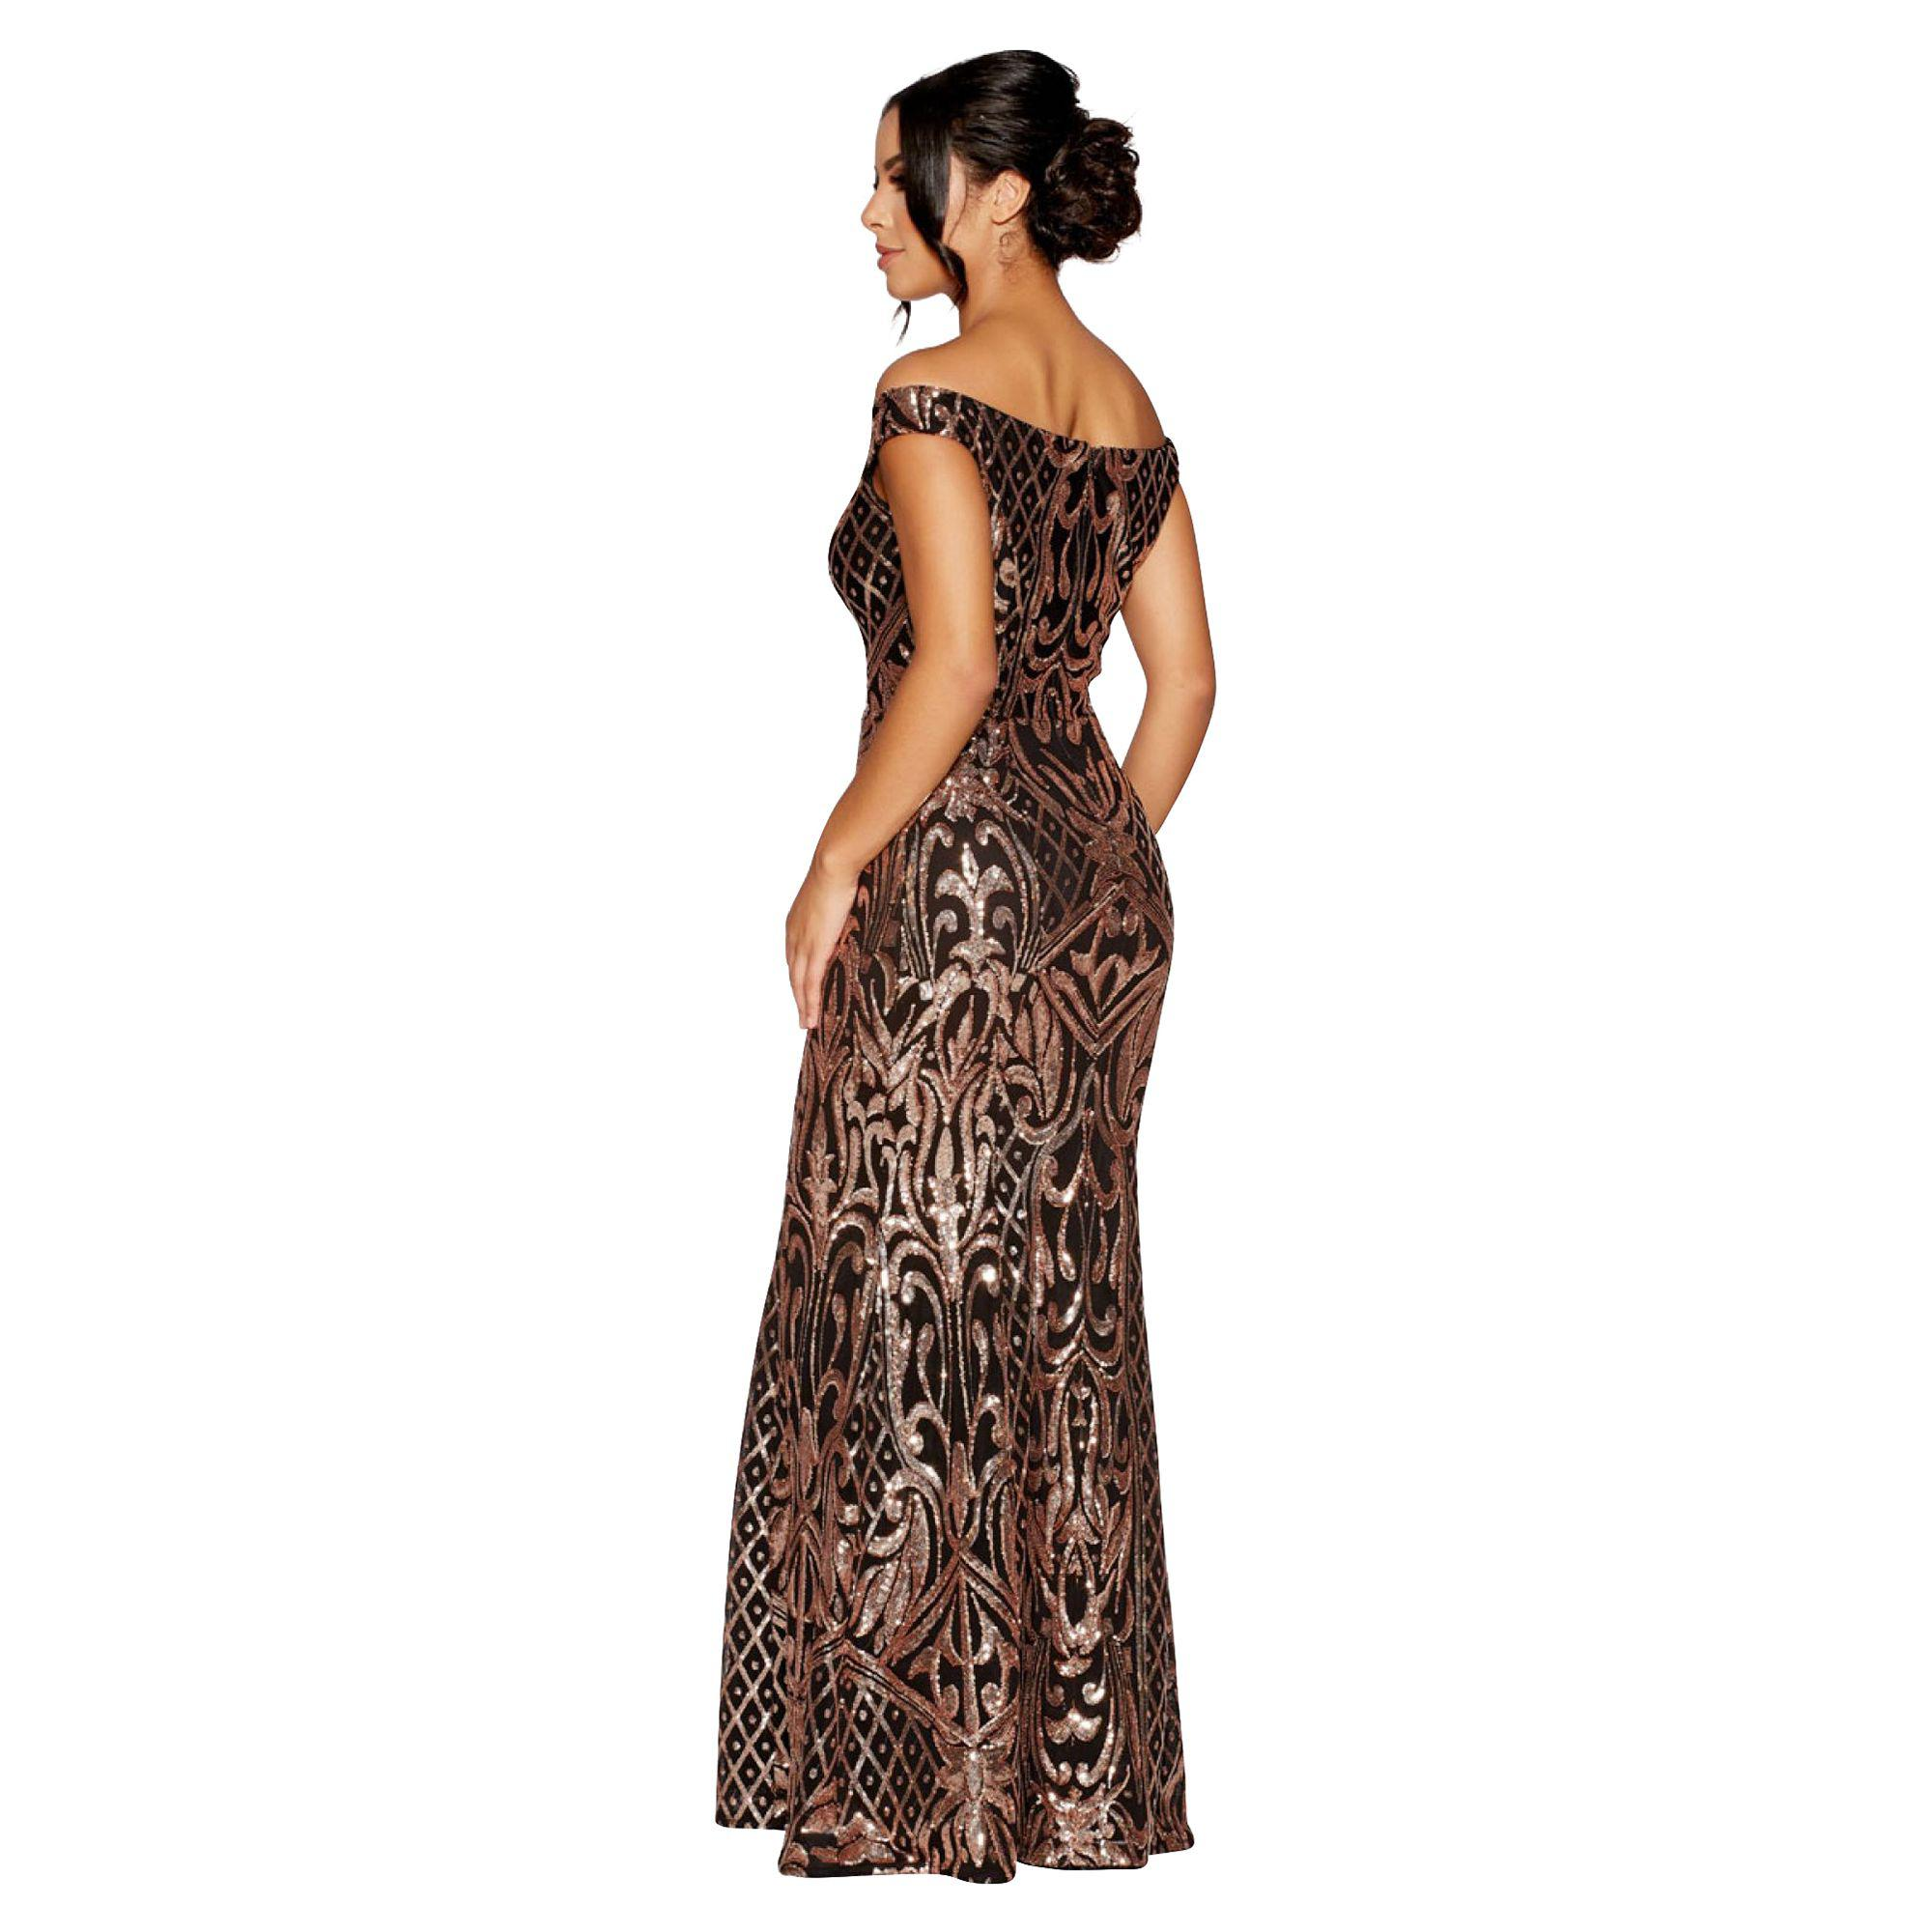 4d36ff9ff7 Black And Gold Sequin Fishtail Maxi Dress Quiz - Gomes Weine AG